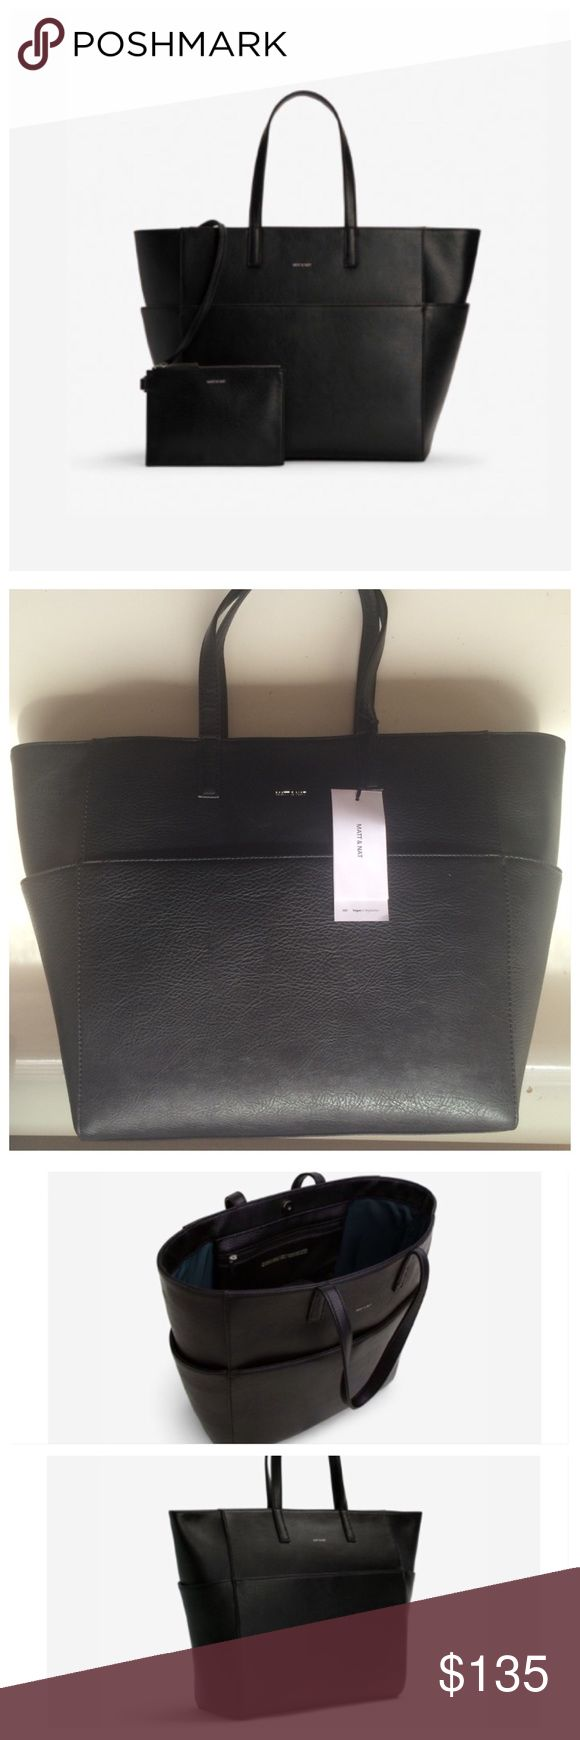 Vegan Matt and Nat Tamara black bag 🎉 HP 10/7 🎉 Brand New Vegan Matt and Nat Tamara black bag / handbag. With the tag, store price 160$   All about bag: Tamara Handbag Black  Oversized tote with magnetic snap closure. Multiple exterior pockets. Detachable zippered pouch connected by strap. Fits 15″ laptop. 100% recycled nylon lining.   #vegan #veganbag #veganhandbag #mattandnat #mattandnattamara #tamarablack #veganmattandnat #tamarablack #mattandnattamarablack #handbag #bag…